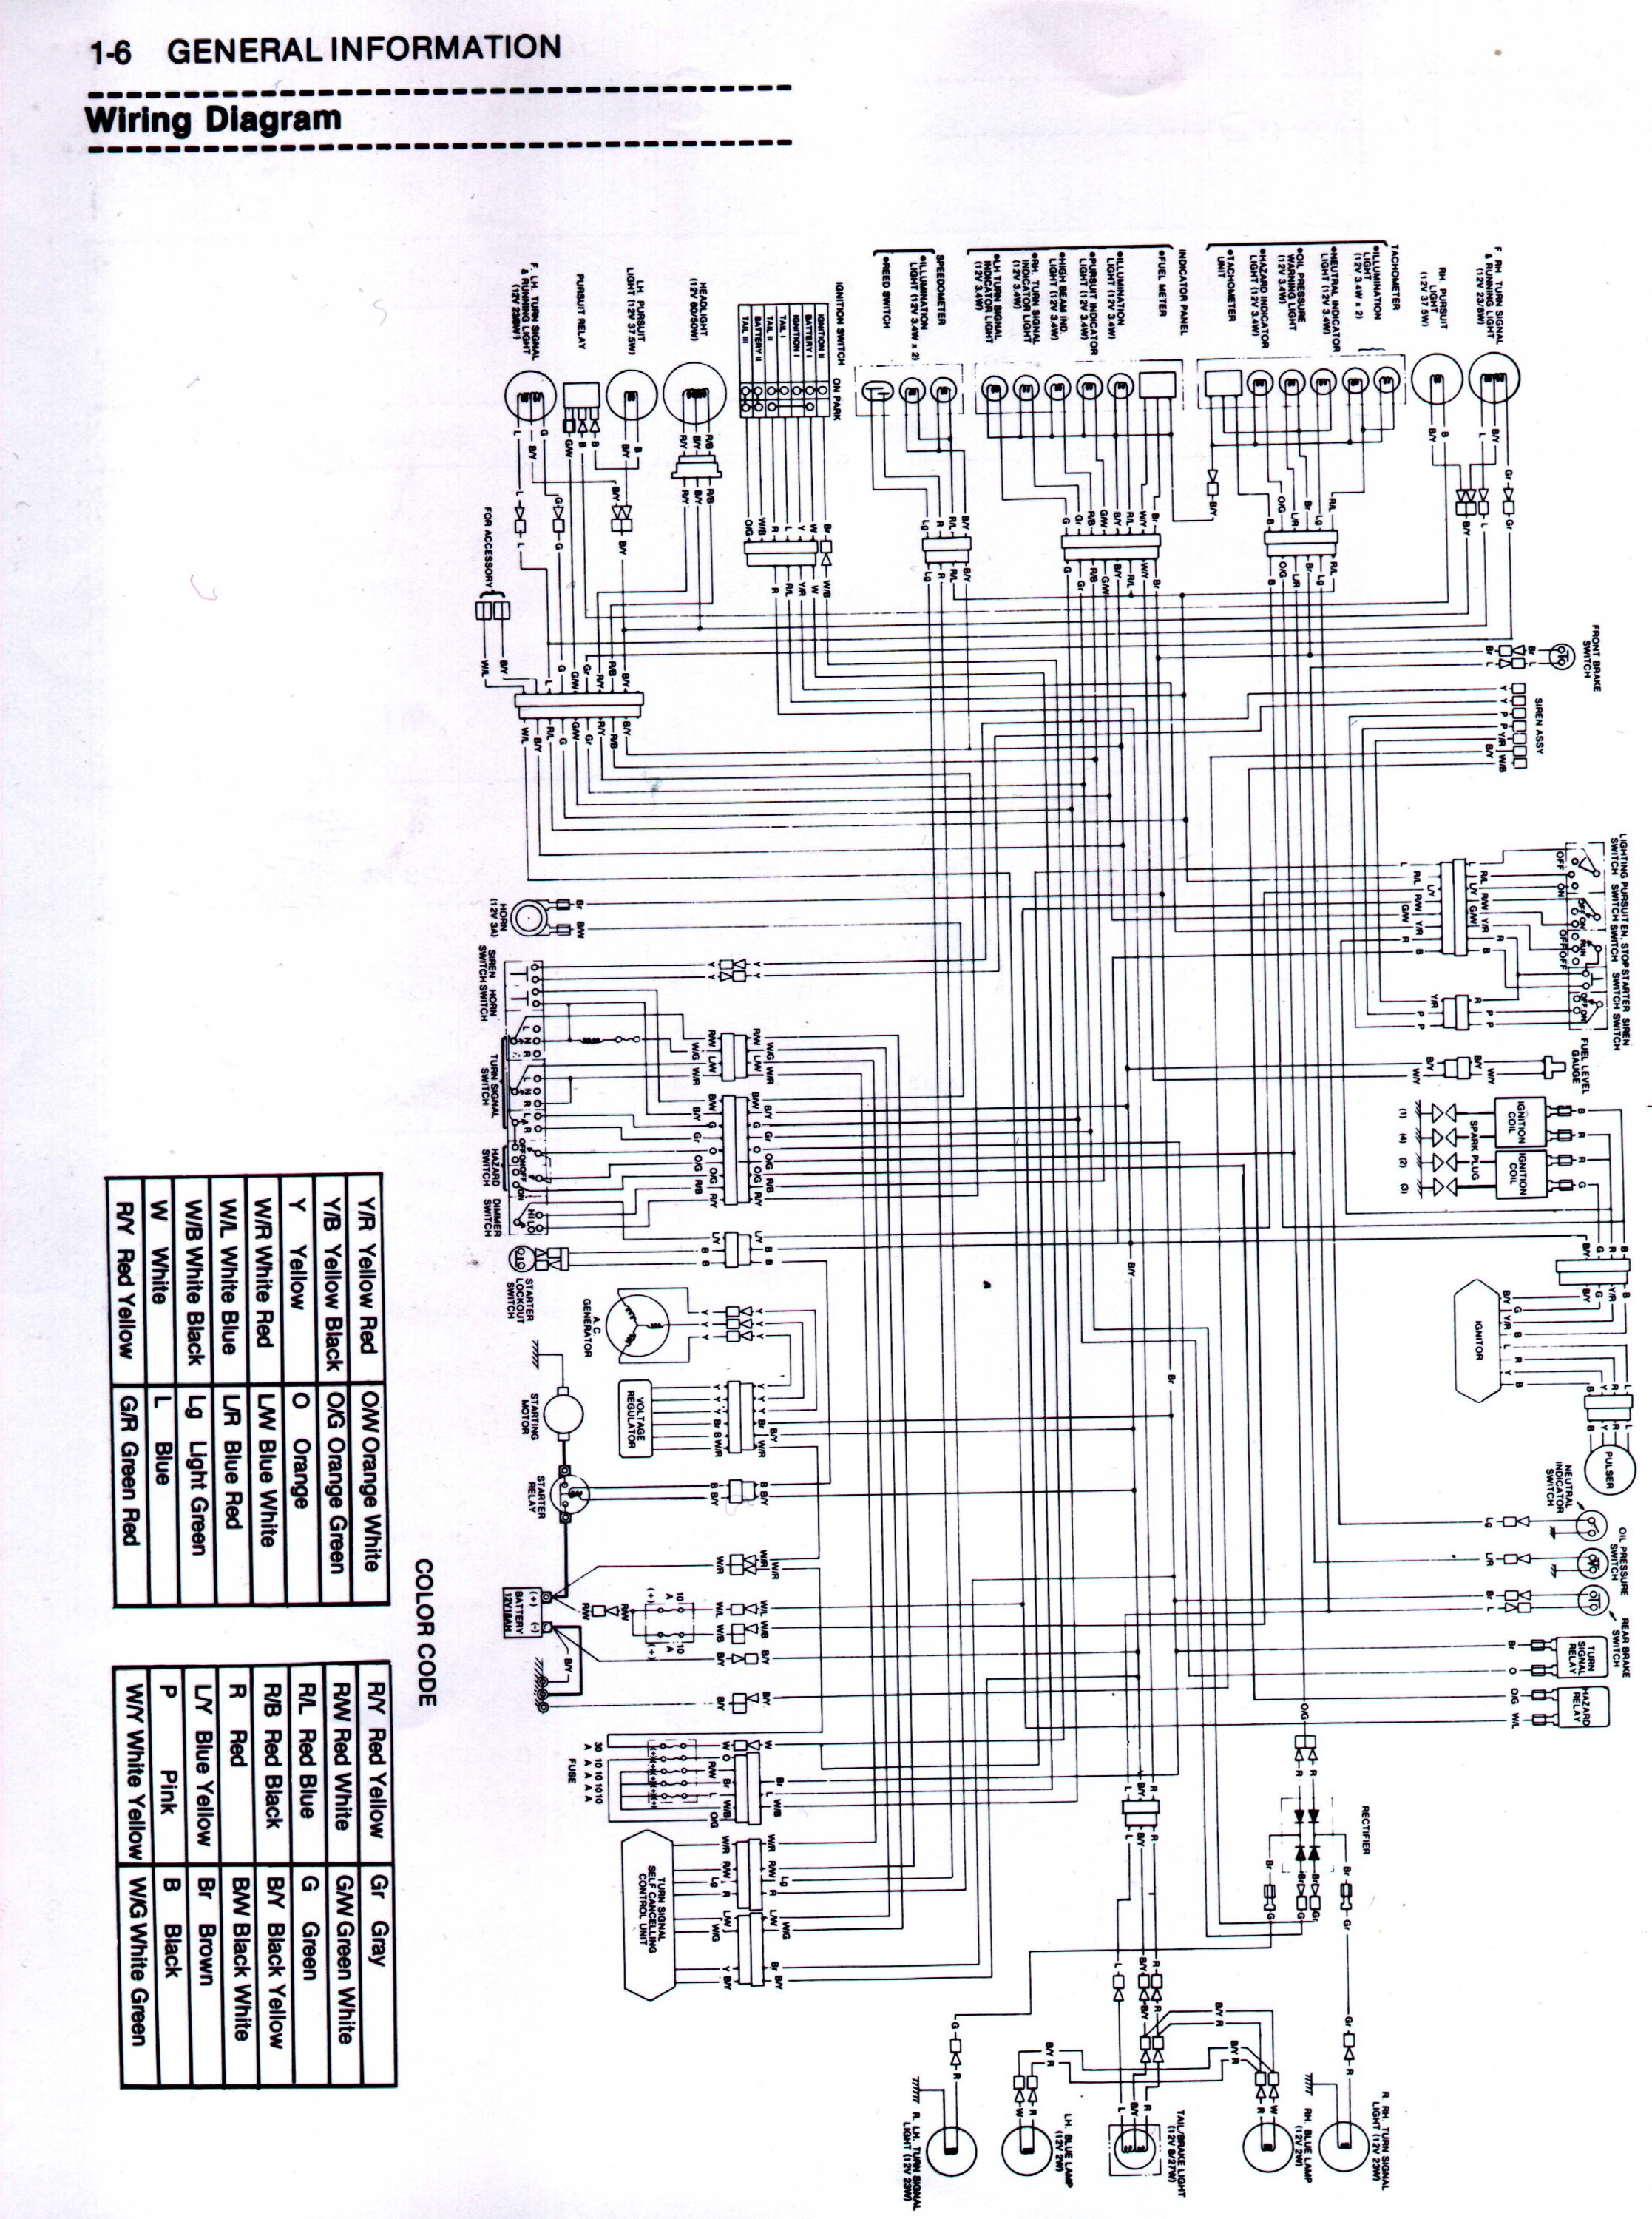 kdx400 wiring diagram trusted wiring diagram u2022 rh soulmatestyle co 1985 KDX 200 KDX 220